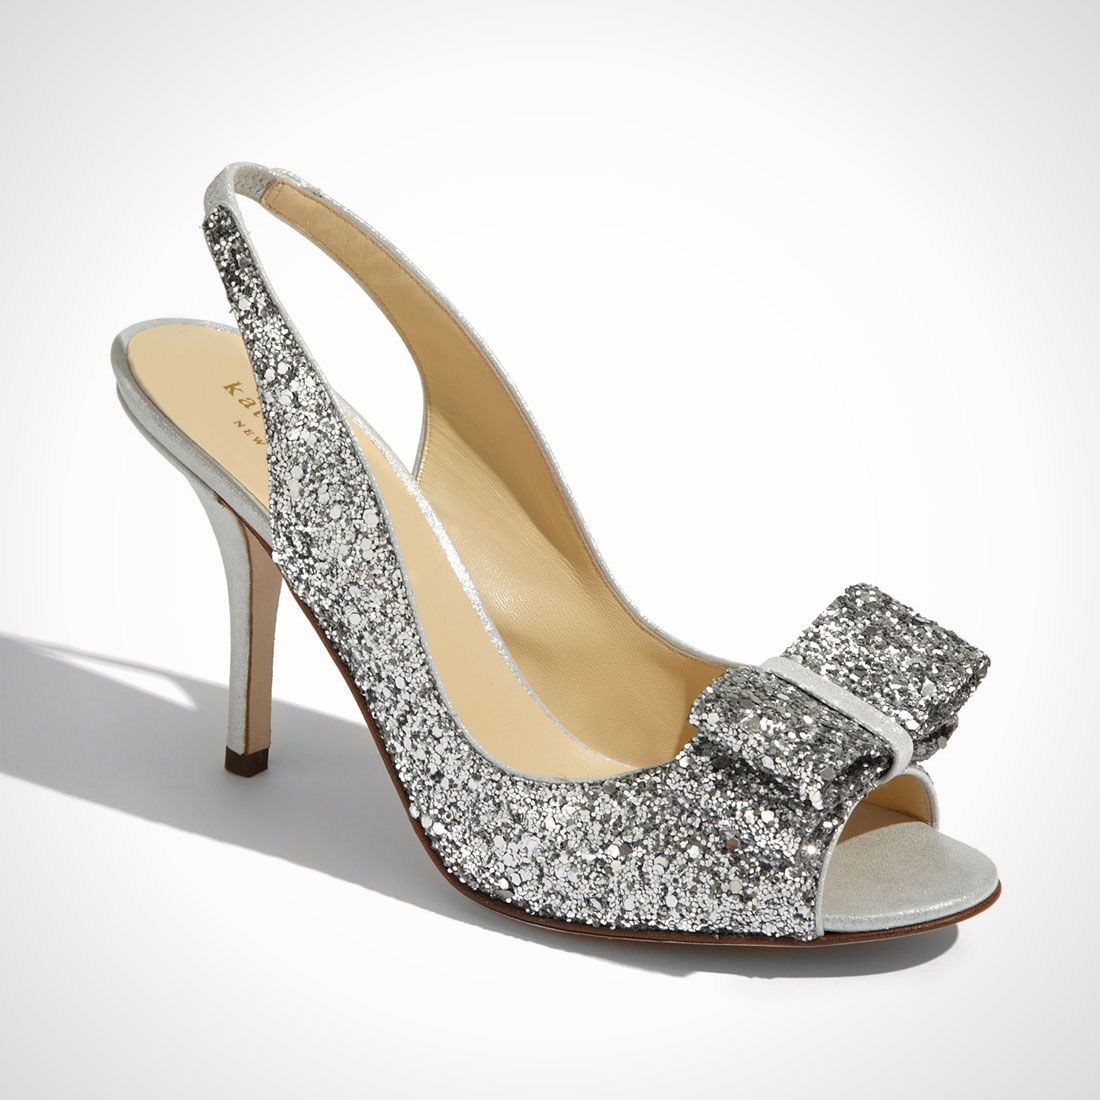 25 Glitzy Holiday Heels to Buy Now | Fashion of Luxury